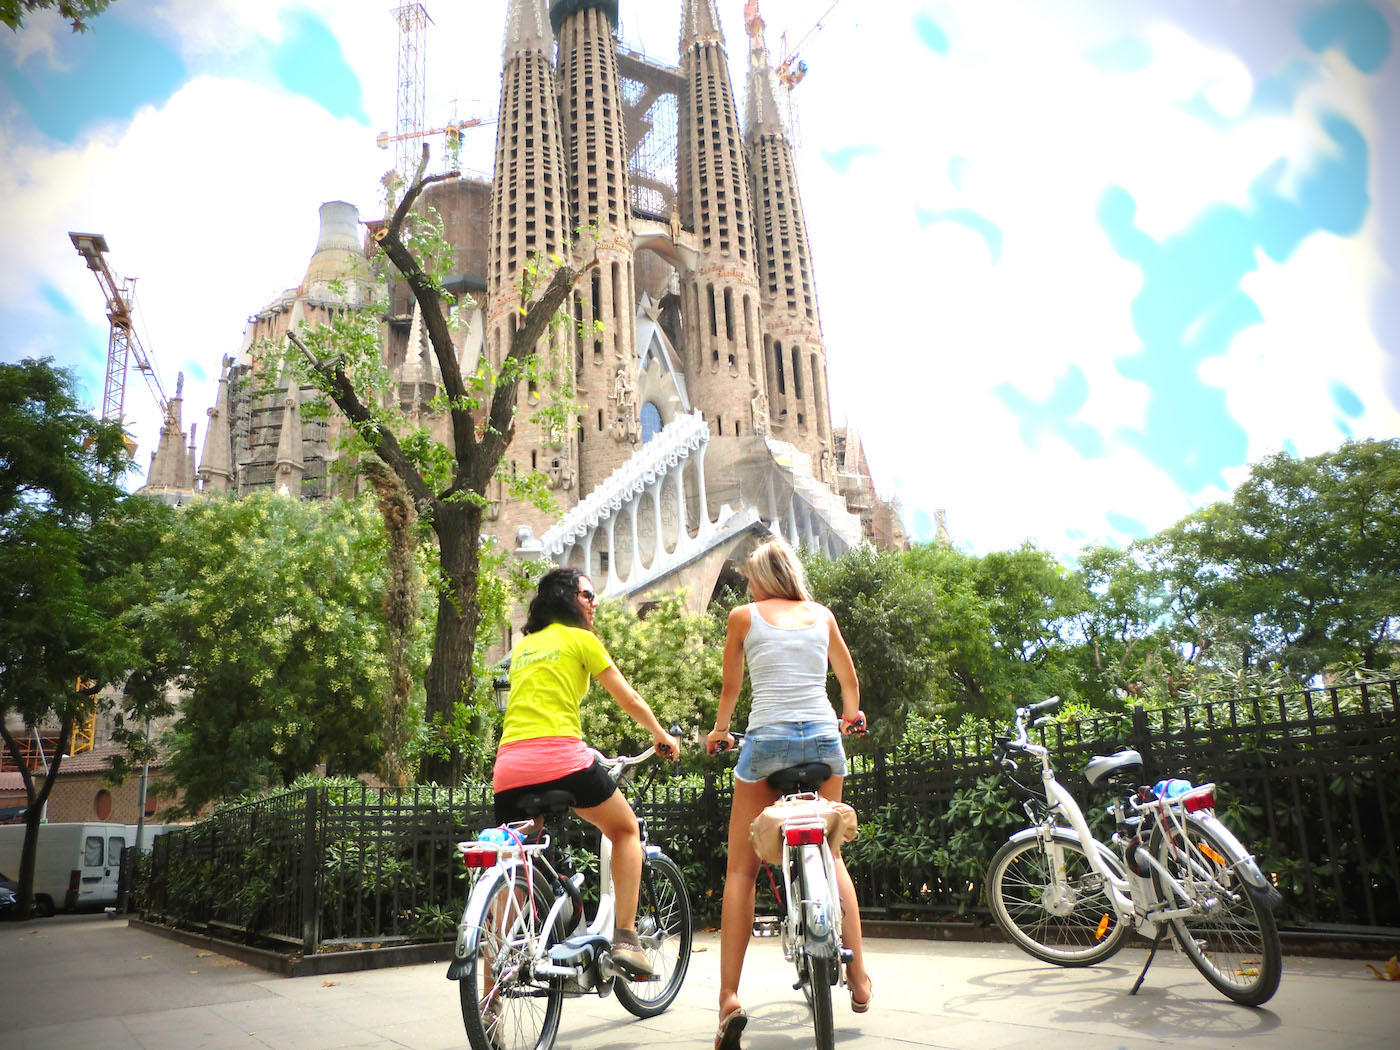 city classic and sagrada familia Barcelona Tour